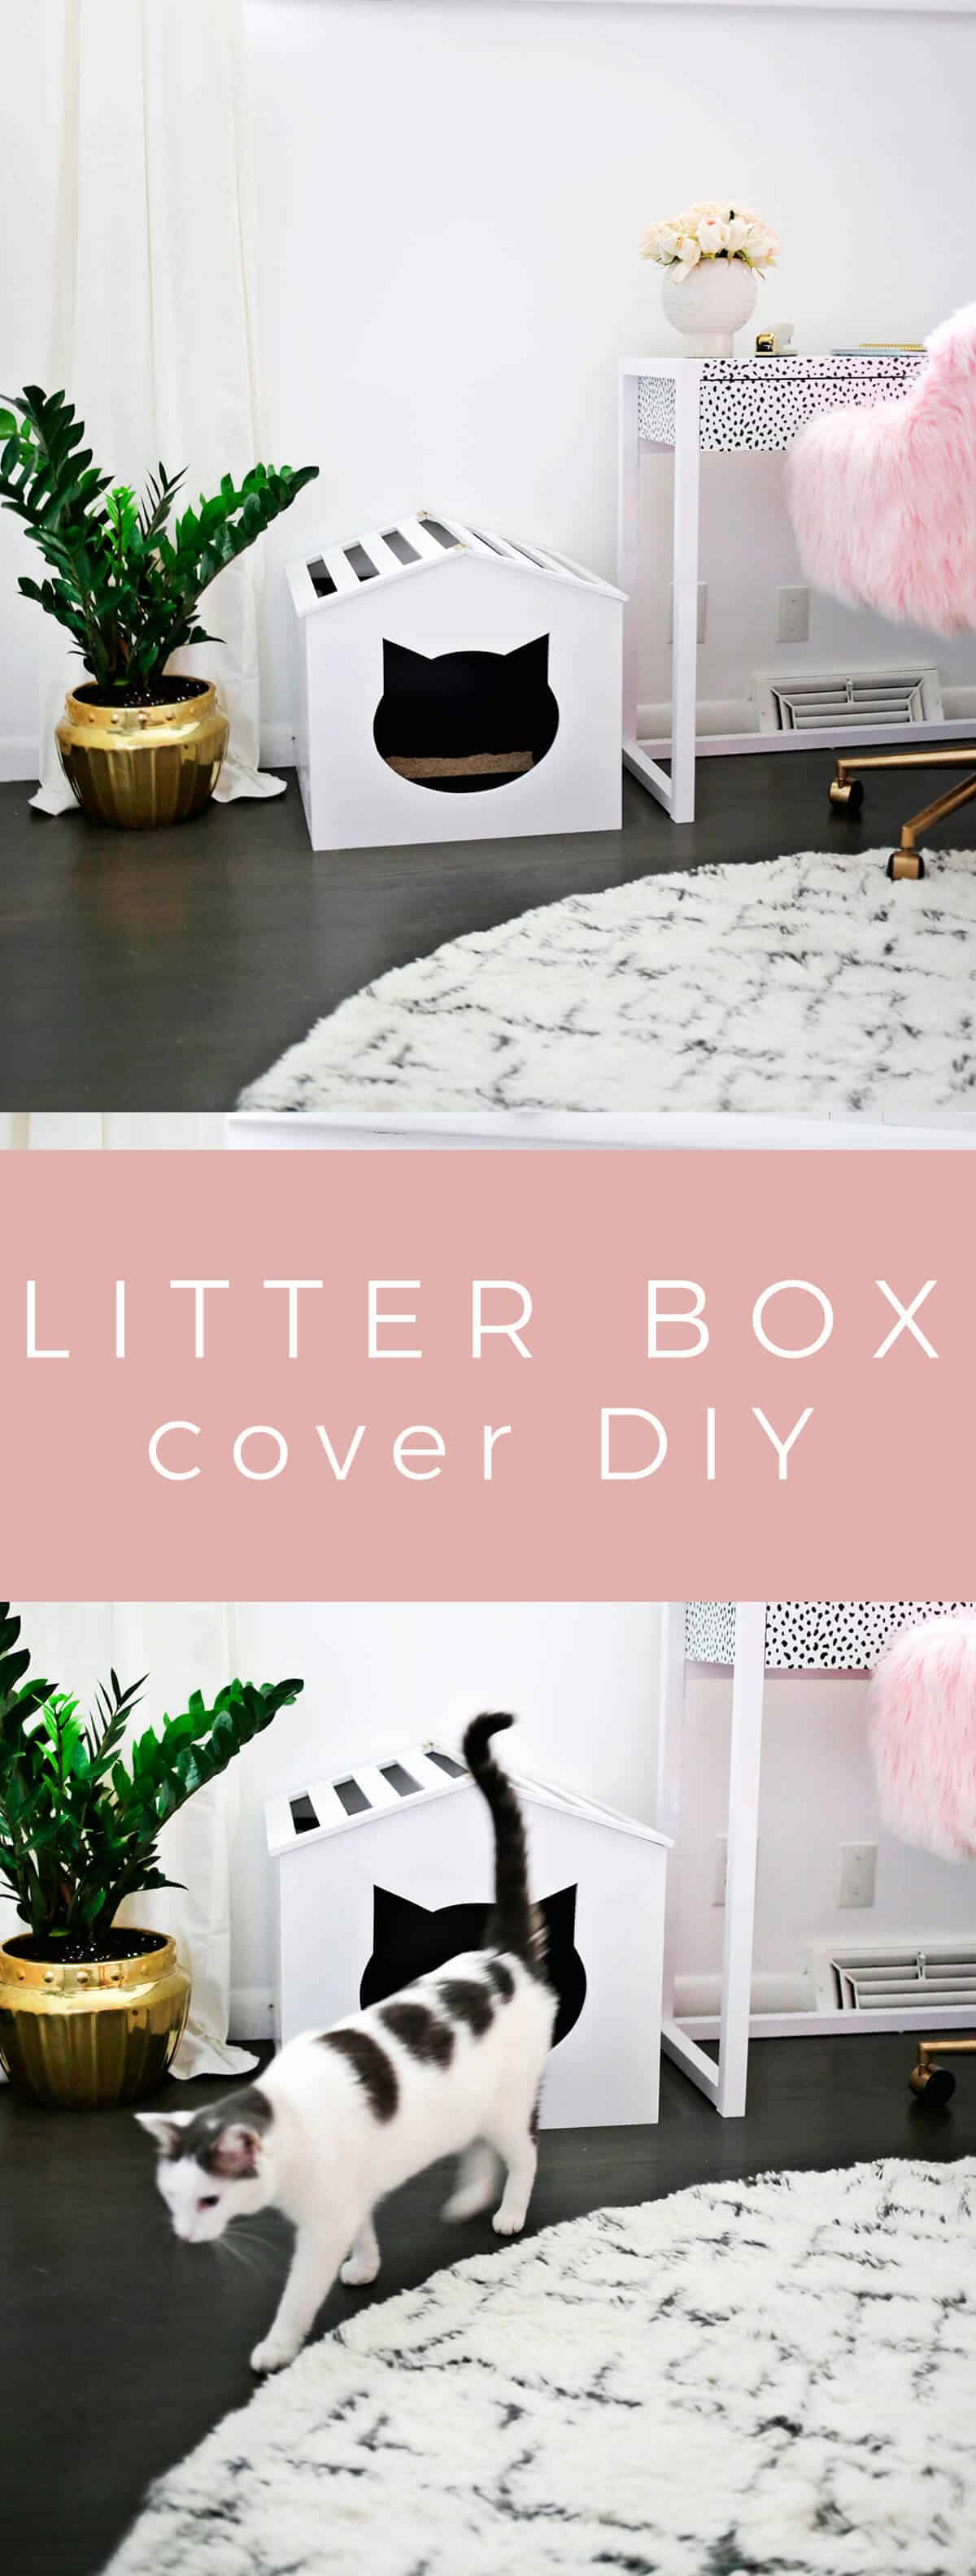 Litter Box Cover DIY! - A Beautiful Mess on home made books, home made hoods, home made brushes, home made cleaning, home made trailers, home made nuts, home made sails, home made home, home made umbrellas, home made fans, home made locks, home made pillows, home made belts, home made security, home made screws, home made shirts, home made sports, home made windows, home made country, home made tents,